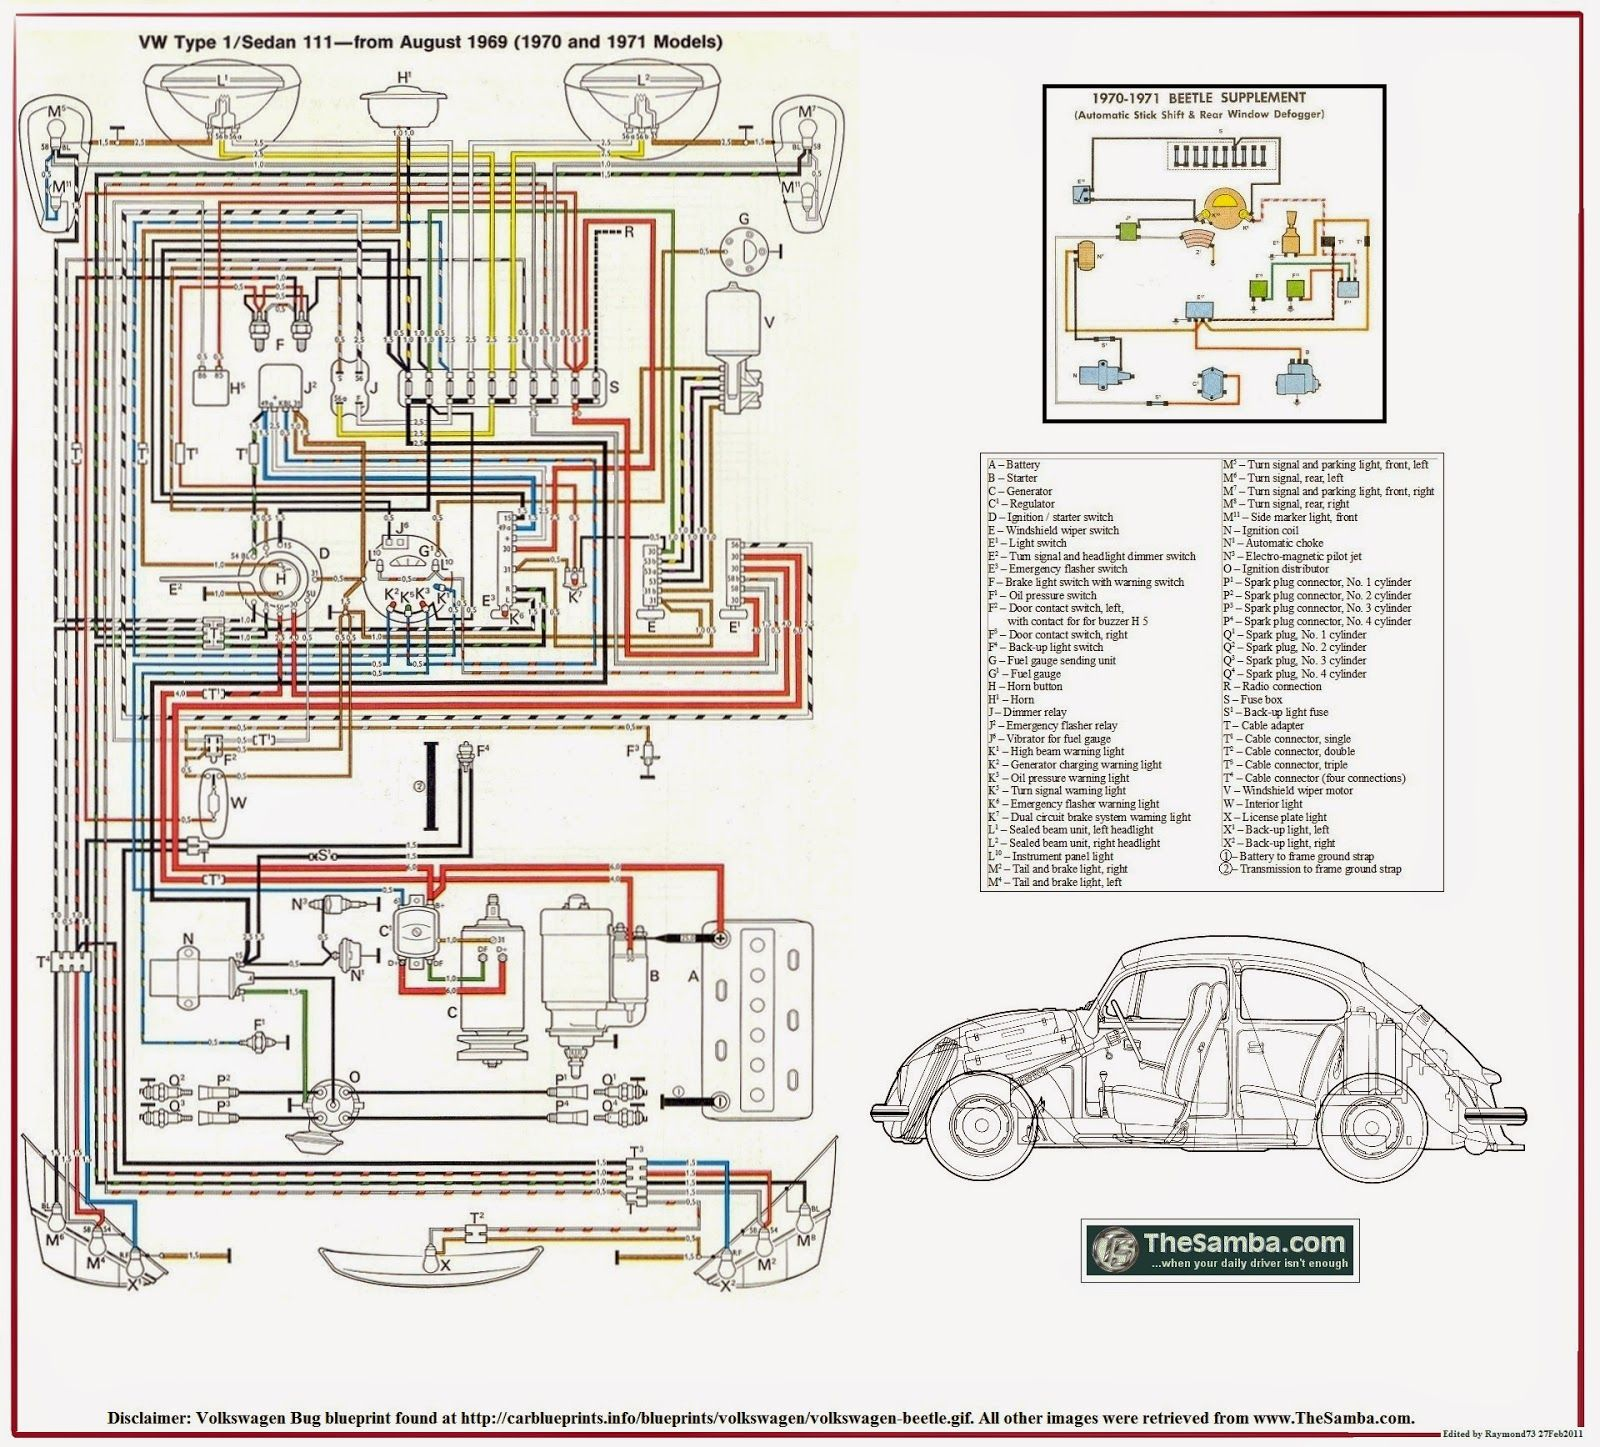 c42f7e50c6cd2df691326f8c1e5c6e97 urbi et orbi my bucket list journals volkswagen (vw) beetle 1970 vw beetle electrical wiring diagram at soozxer.org